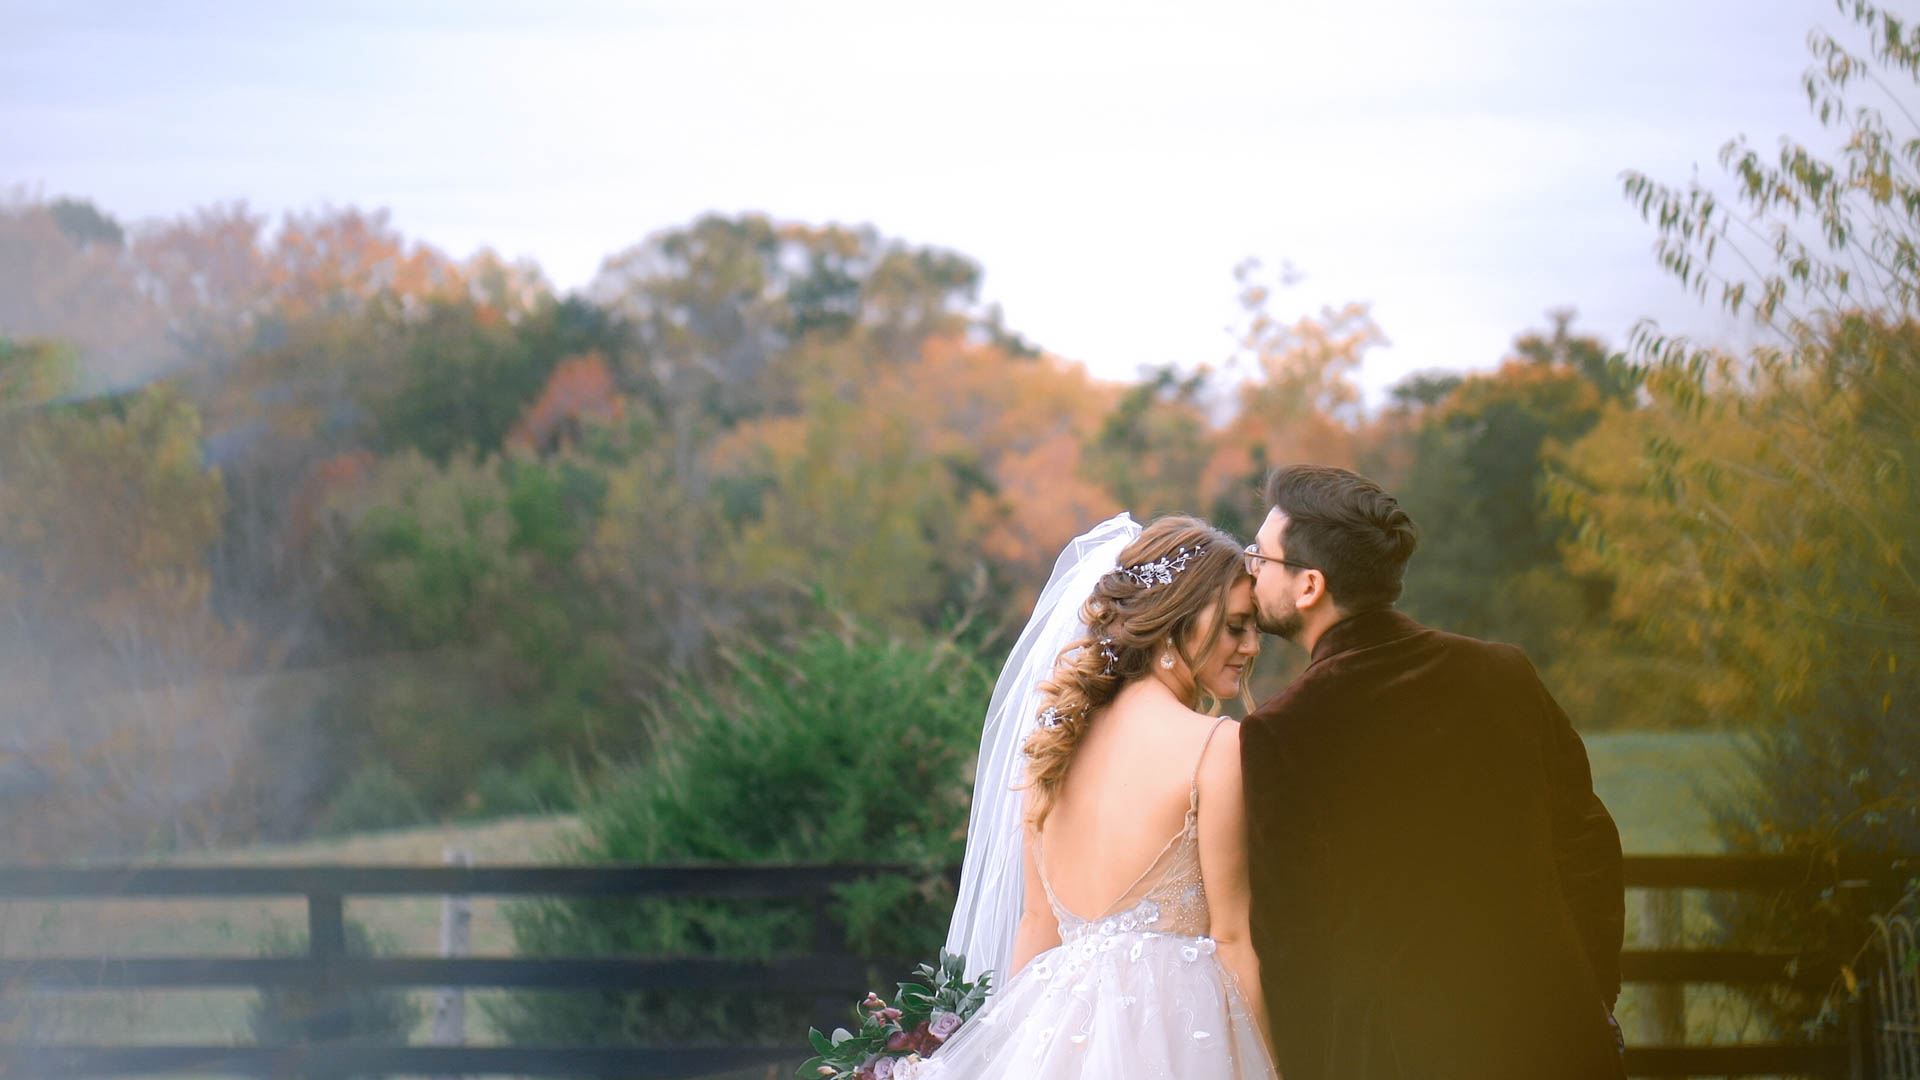 Allie + Andrew | Reva, Virginia | Walden Hall